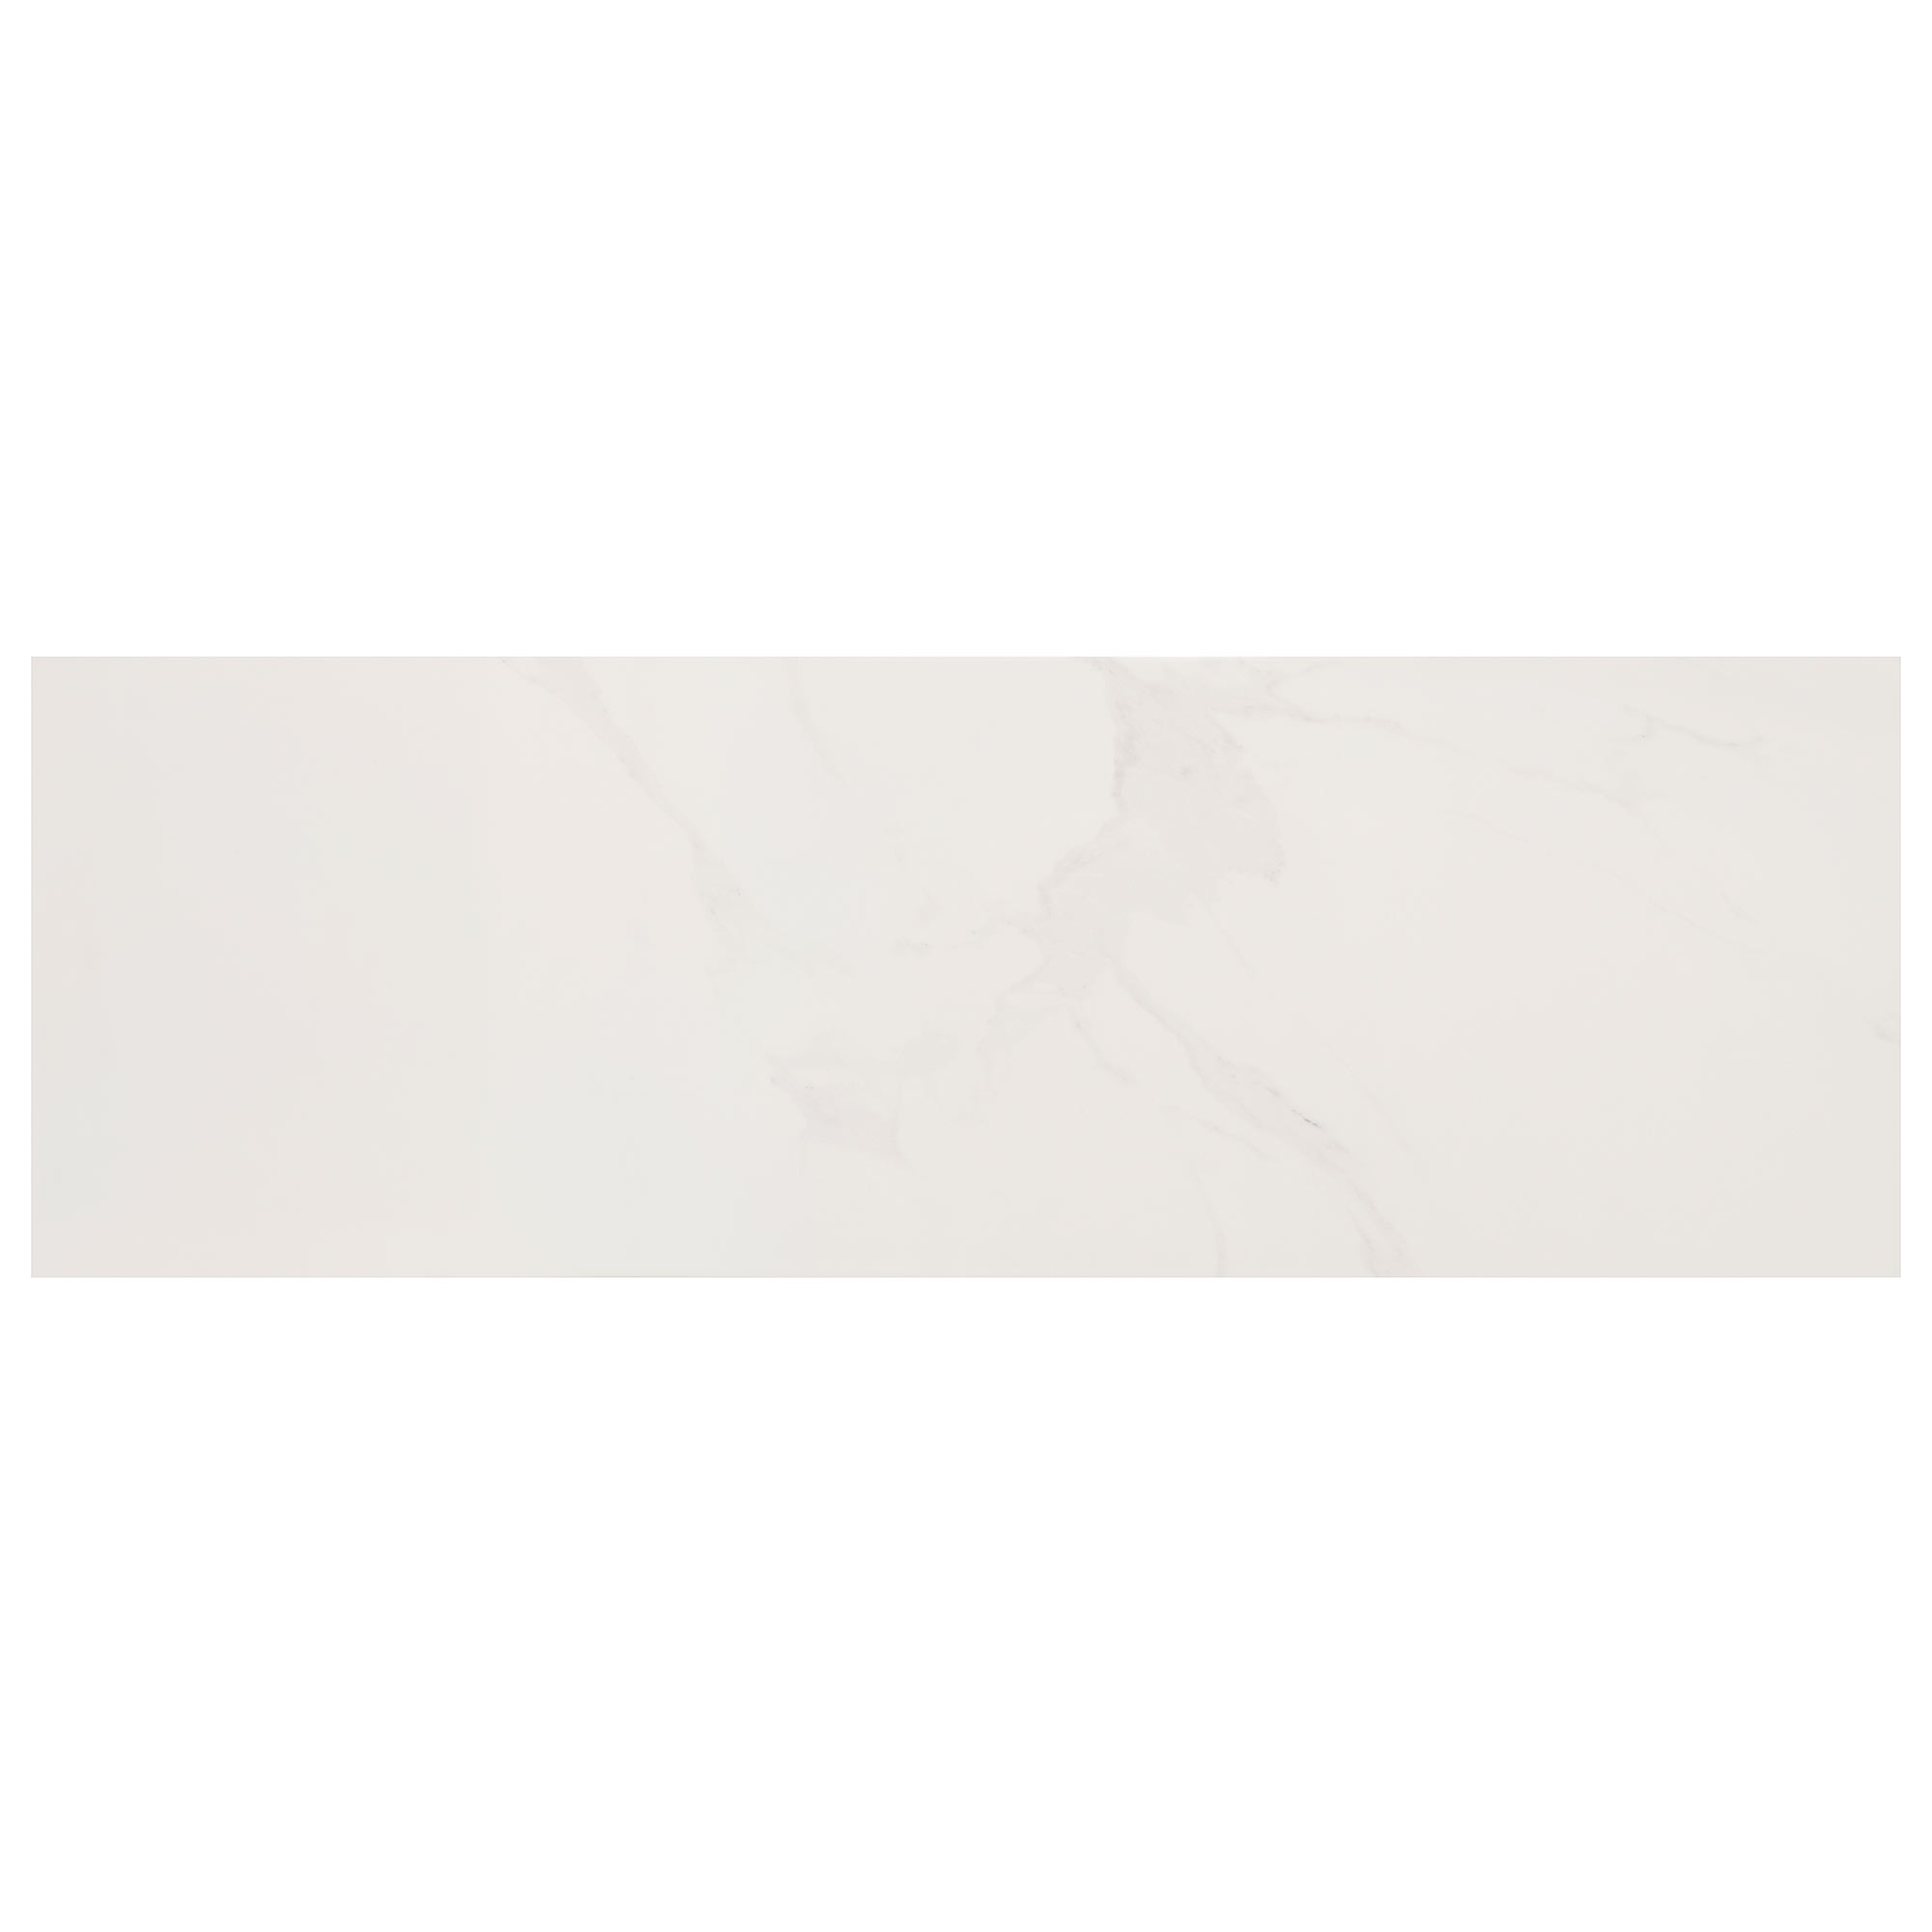 Плитка настенная Cristacer Minerva White 25x75 см плитка настенная cifre relieve accord white 25x75